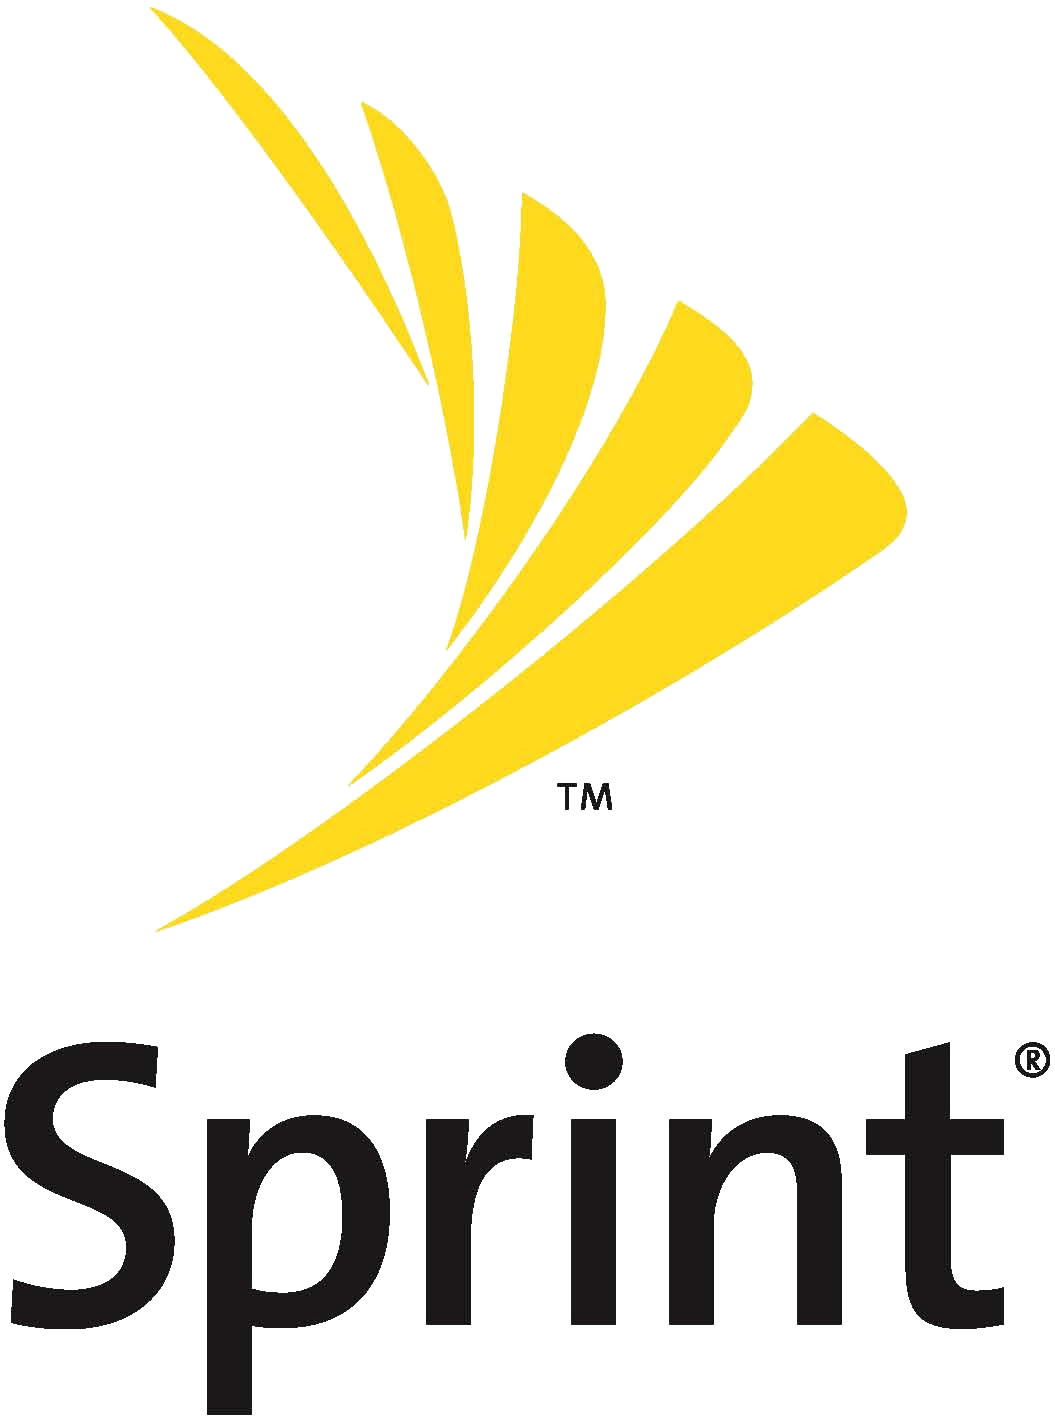 Sprint's 4G Technological Evolution